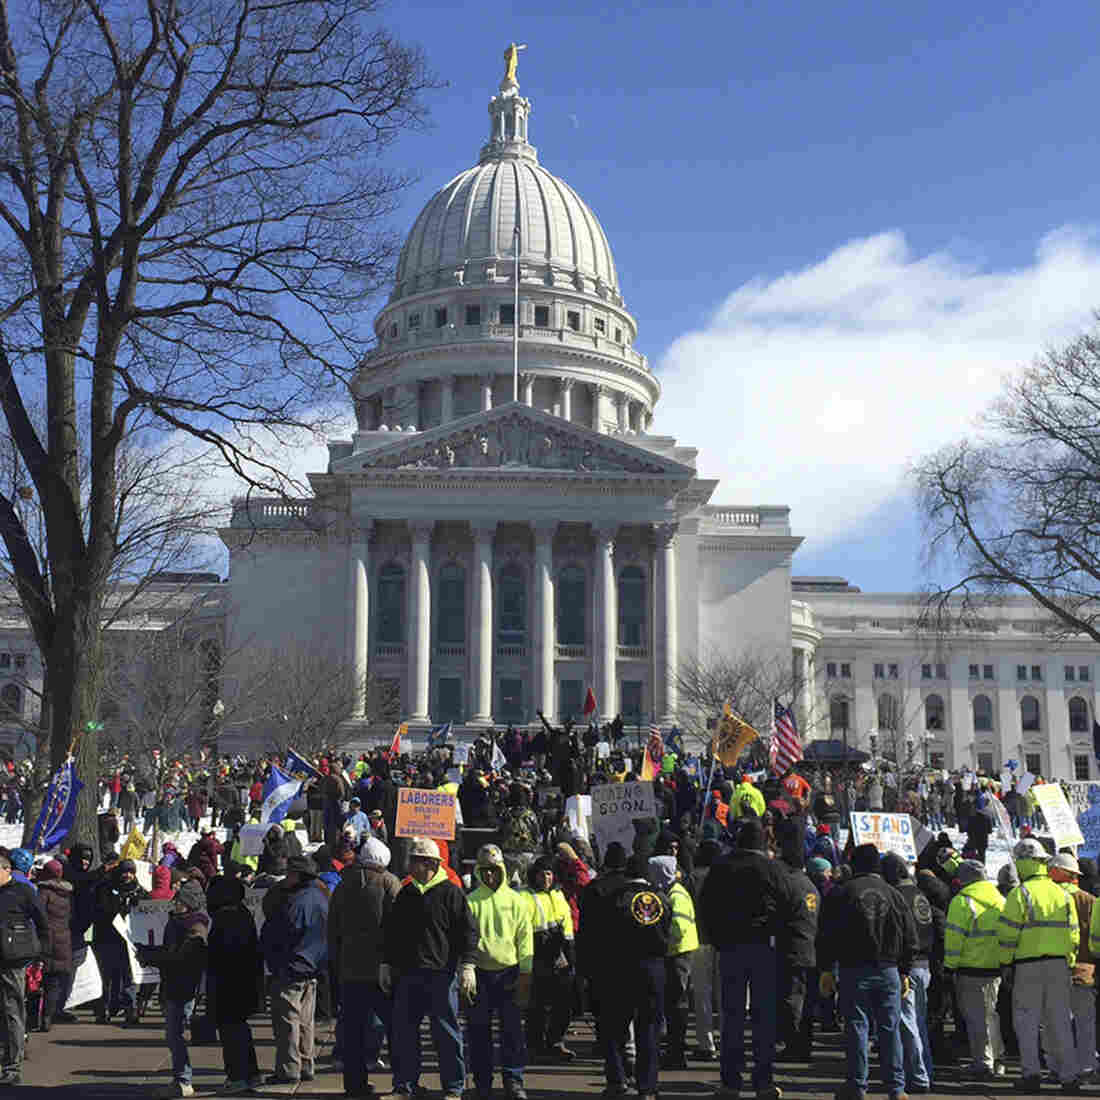 Gov. Scott Walker Goes Head-To-Head With Labor Over Right-To-Work